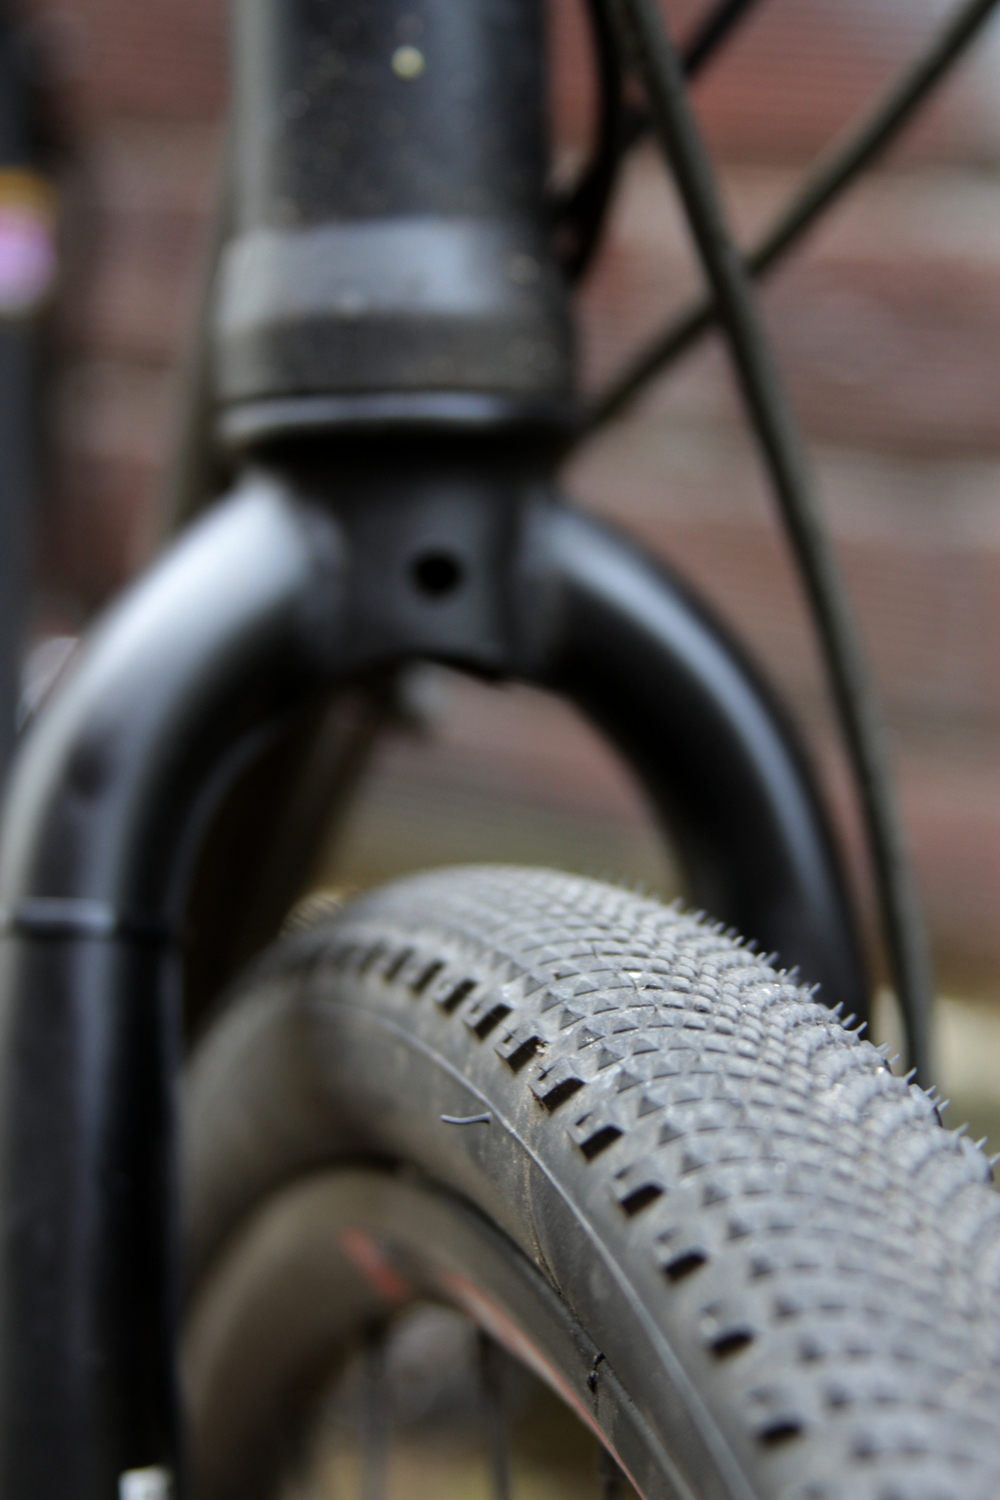 Specialized Trigger 33mm tires, good for paved - to - medium gravel roads. Tubeless, natch.